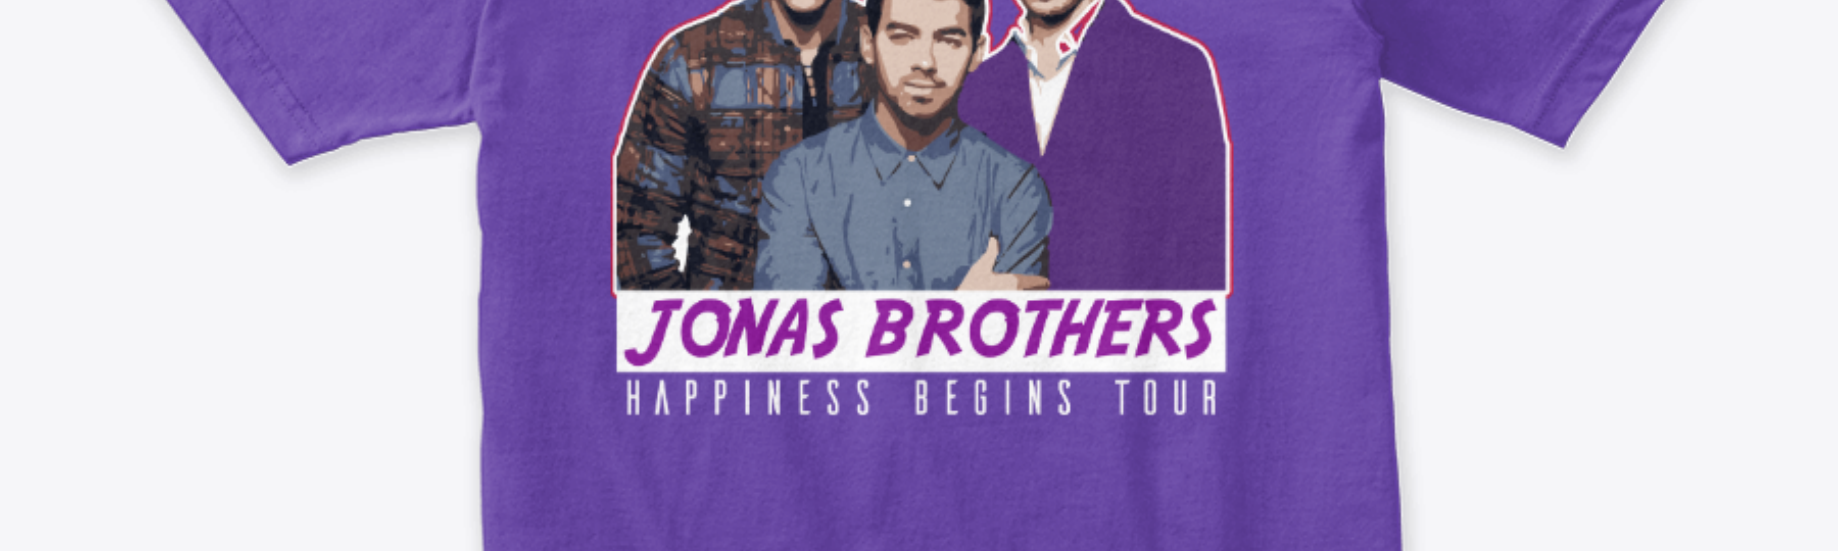 a92b09025 Happiness Begins Tour by Jonas Brothers and Tour Tshirt 2019